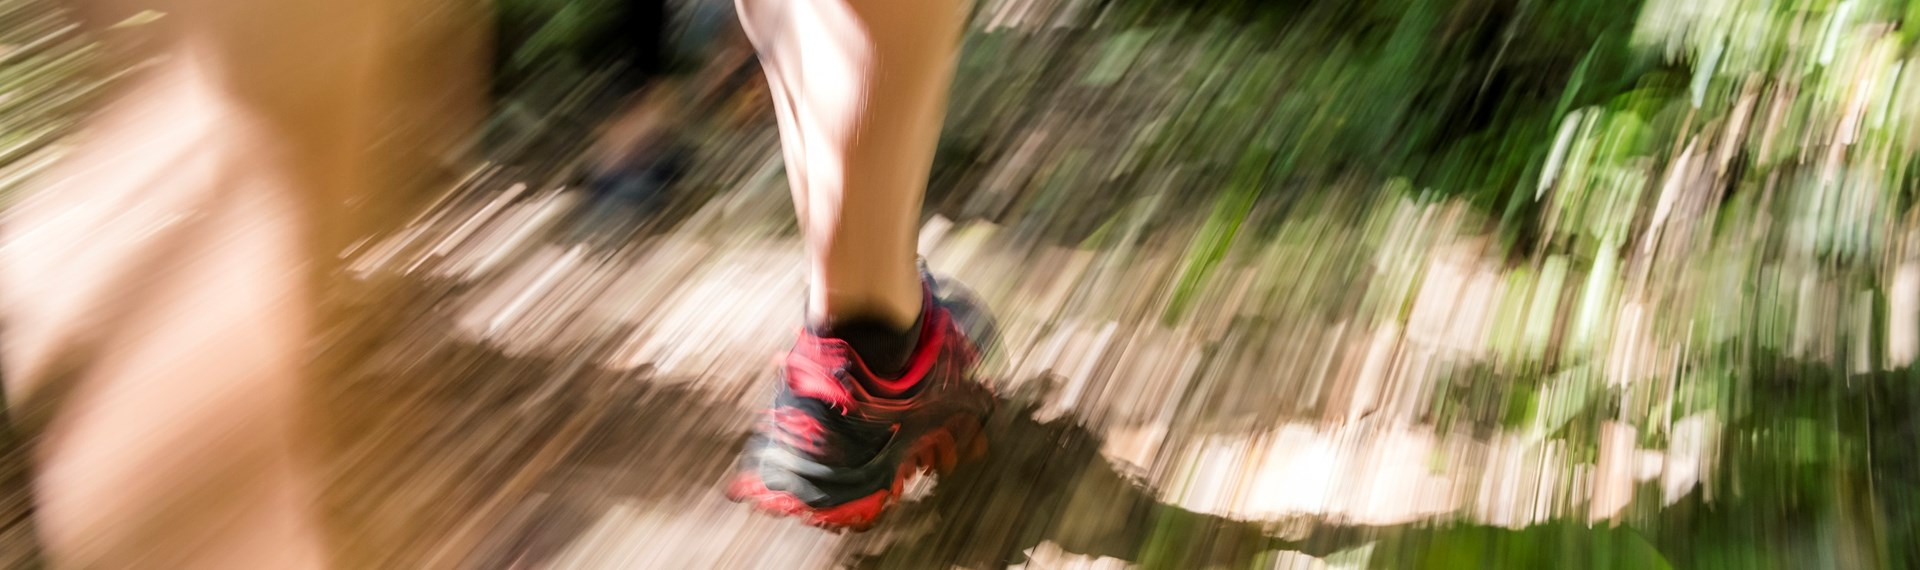 The legs and feet of a runner on the Queen Charlotte Track in the Marlborough Sounds, New Zealand.